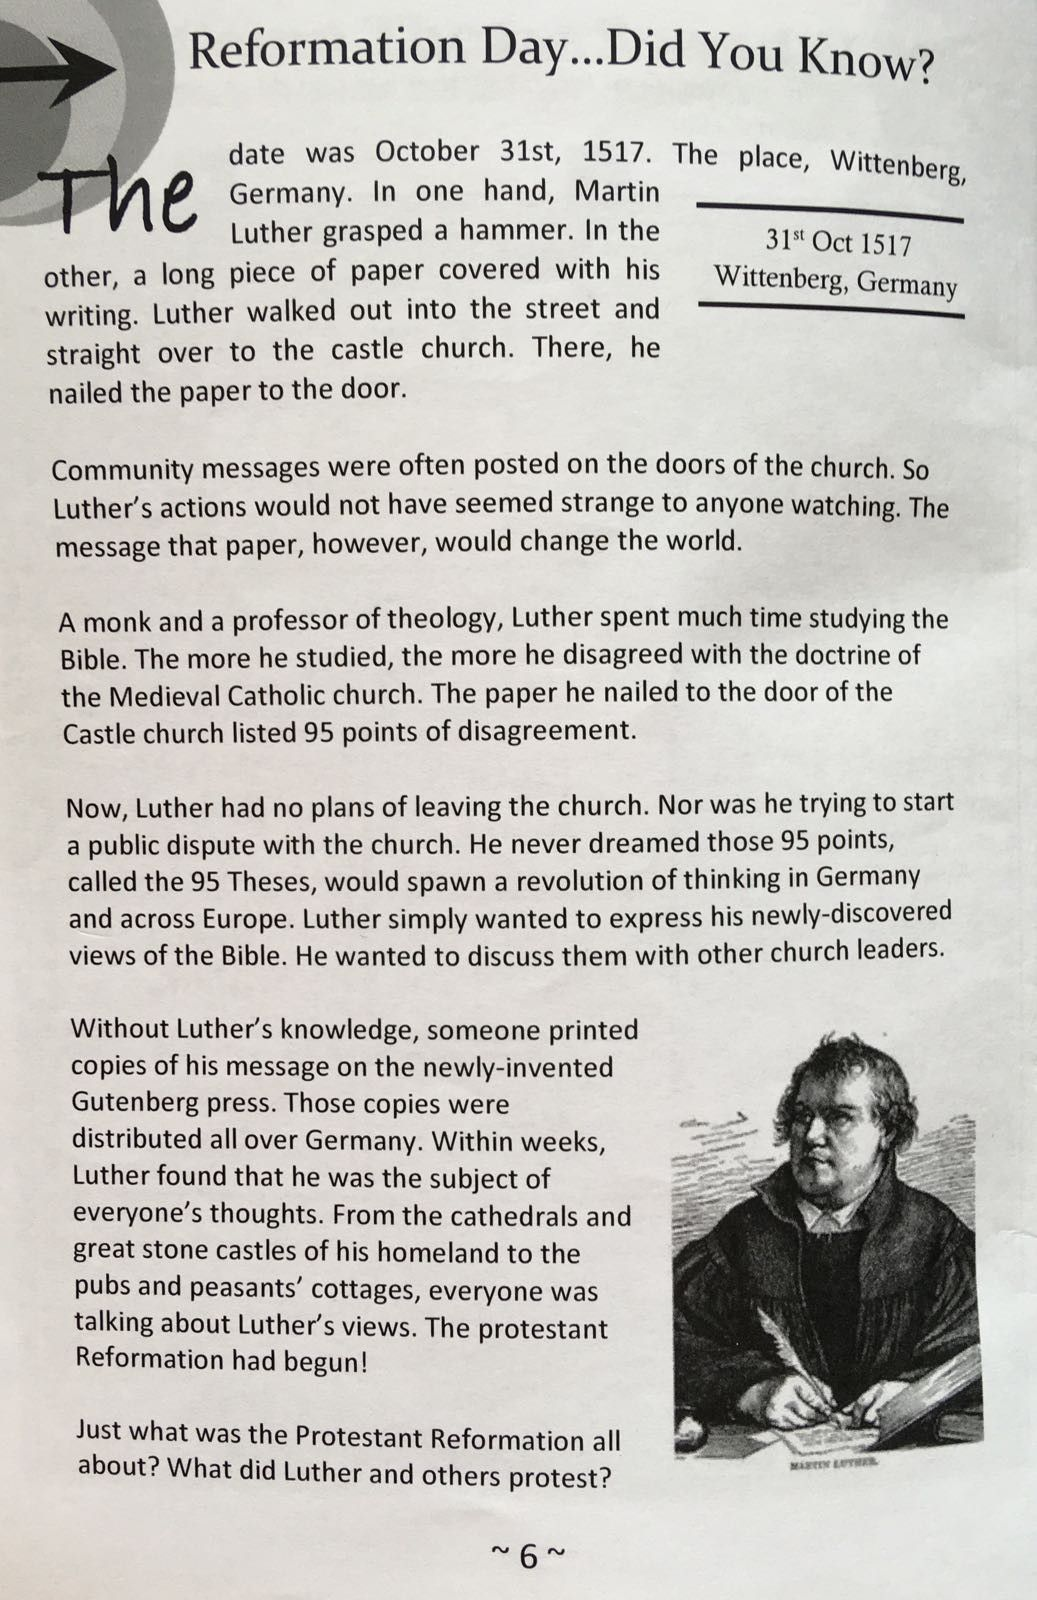 Worksheet Martin Luther 95 Theses Worksheet Carlos Lomas Worksheet